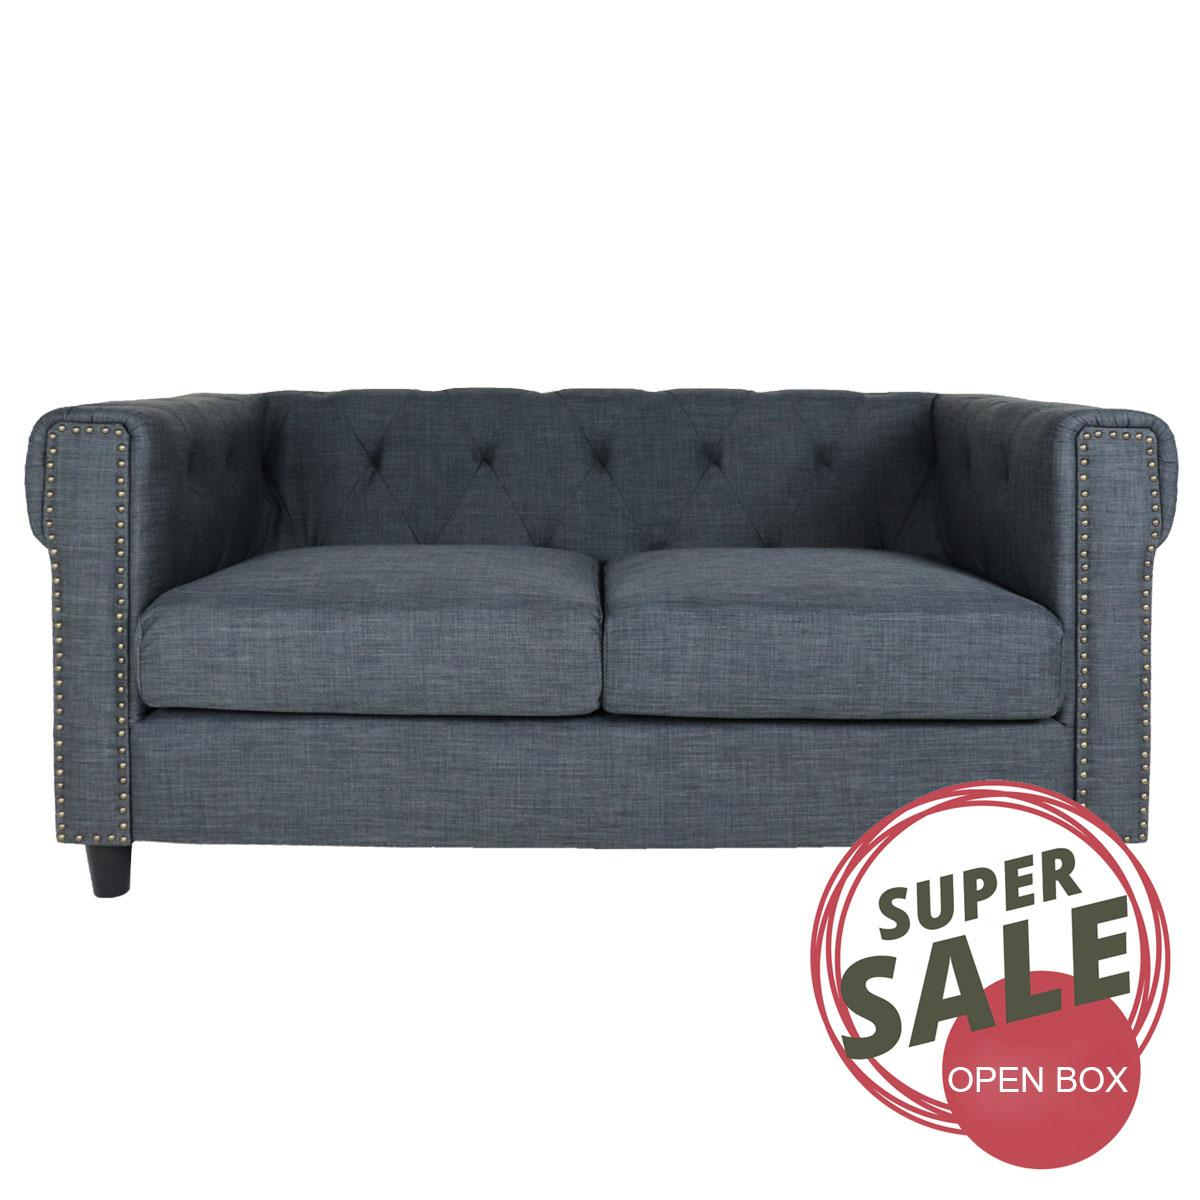 2 Seater Luxury Fabric Sofa. Open Box Sale by H&S